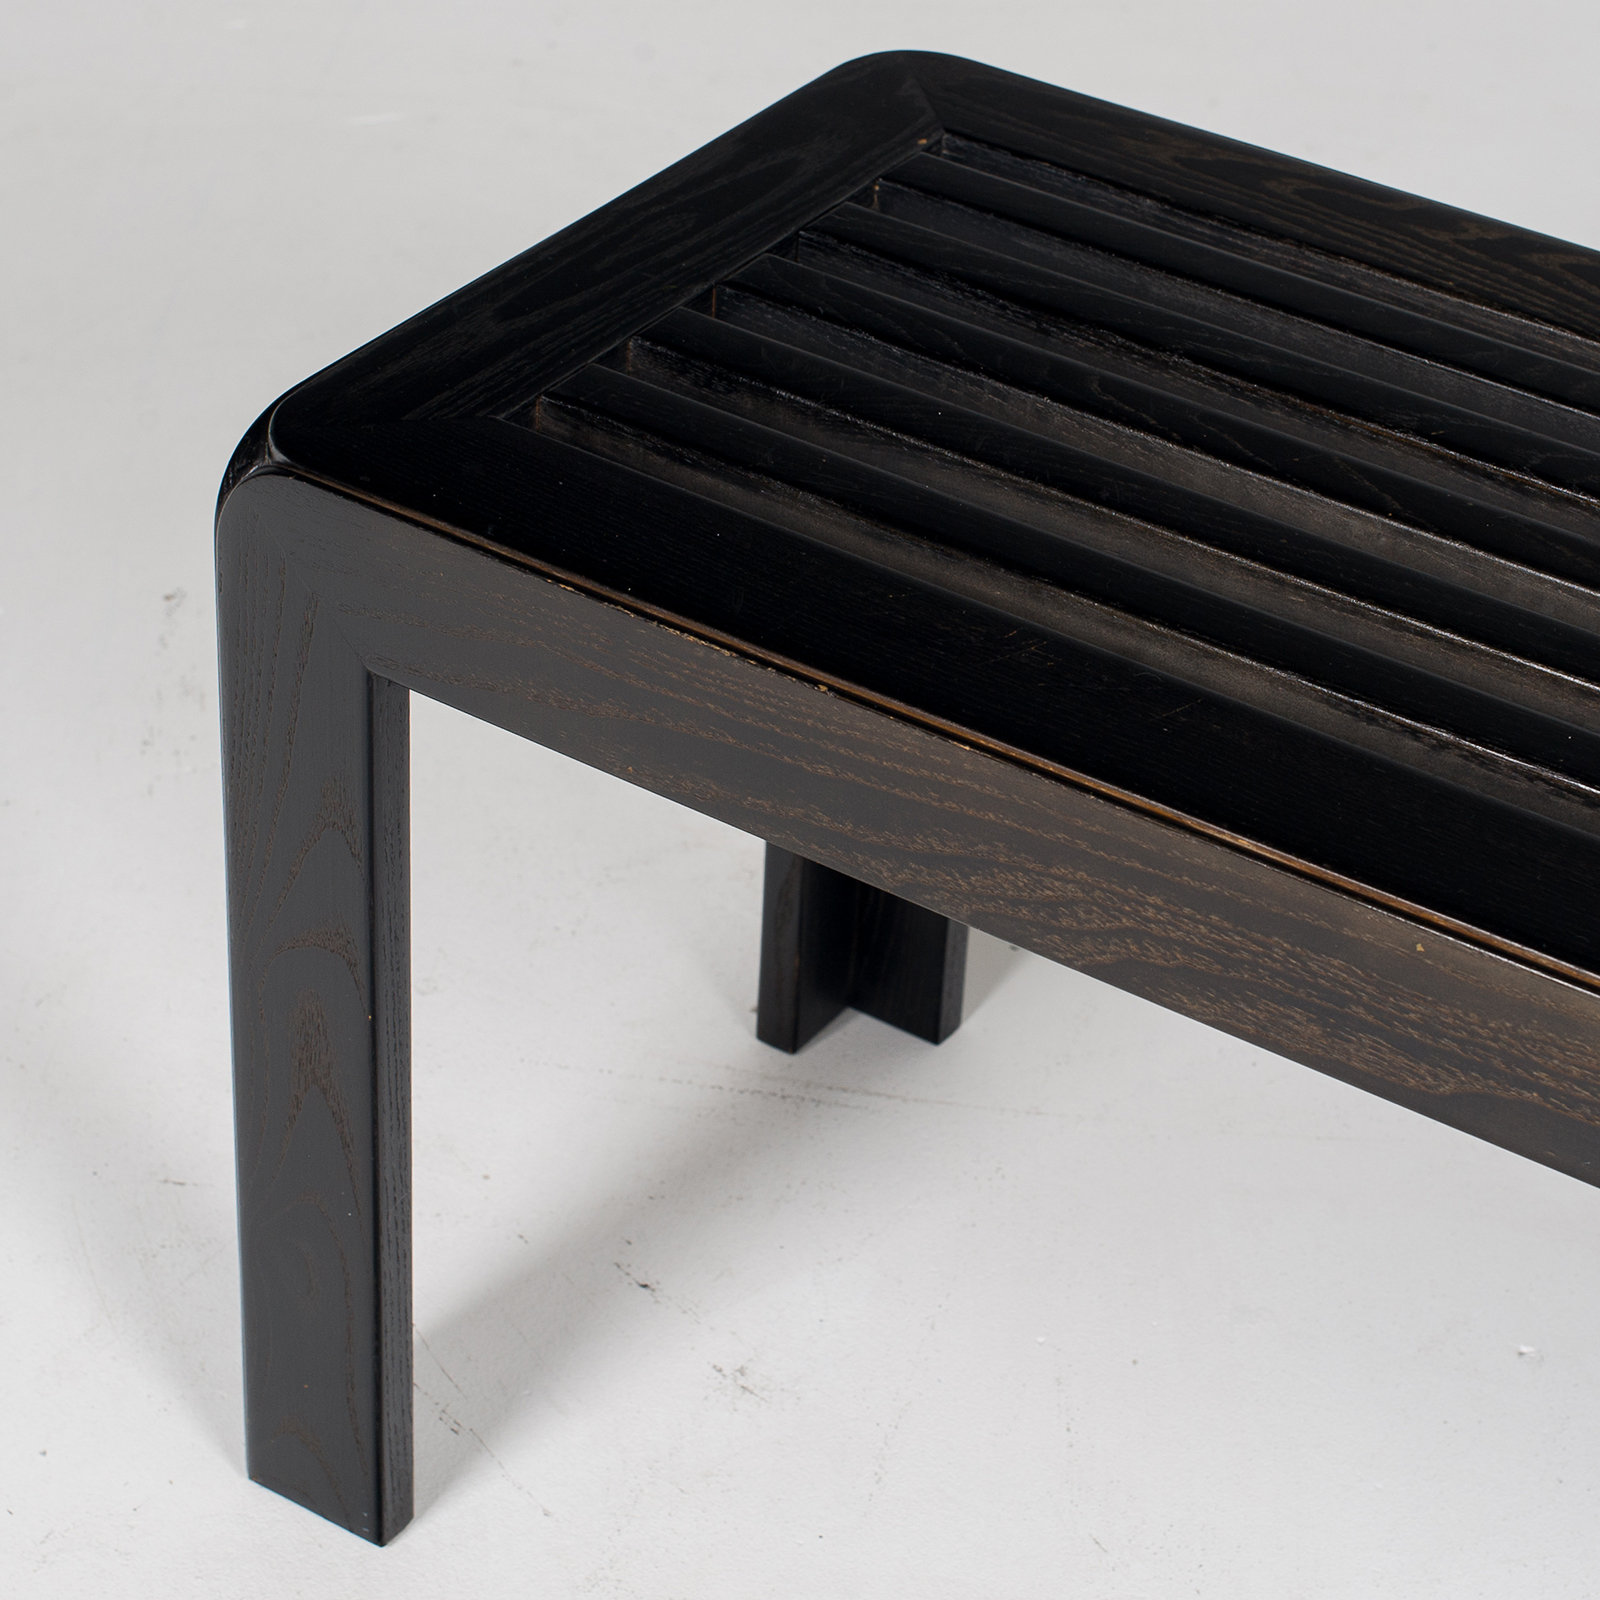 Bench In Black Timber, 1960s, The Netherlands60